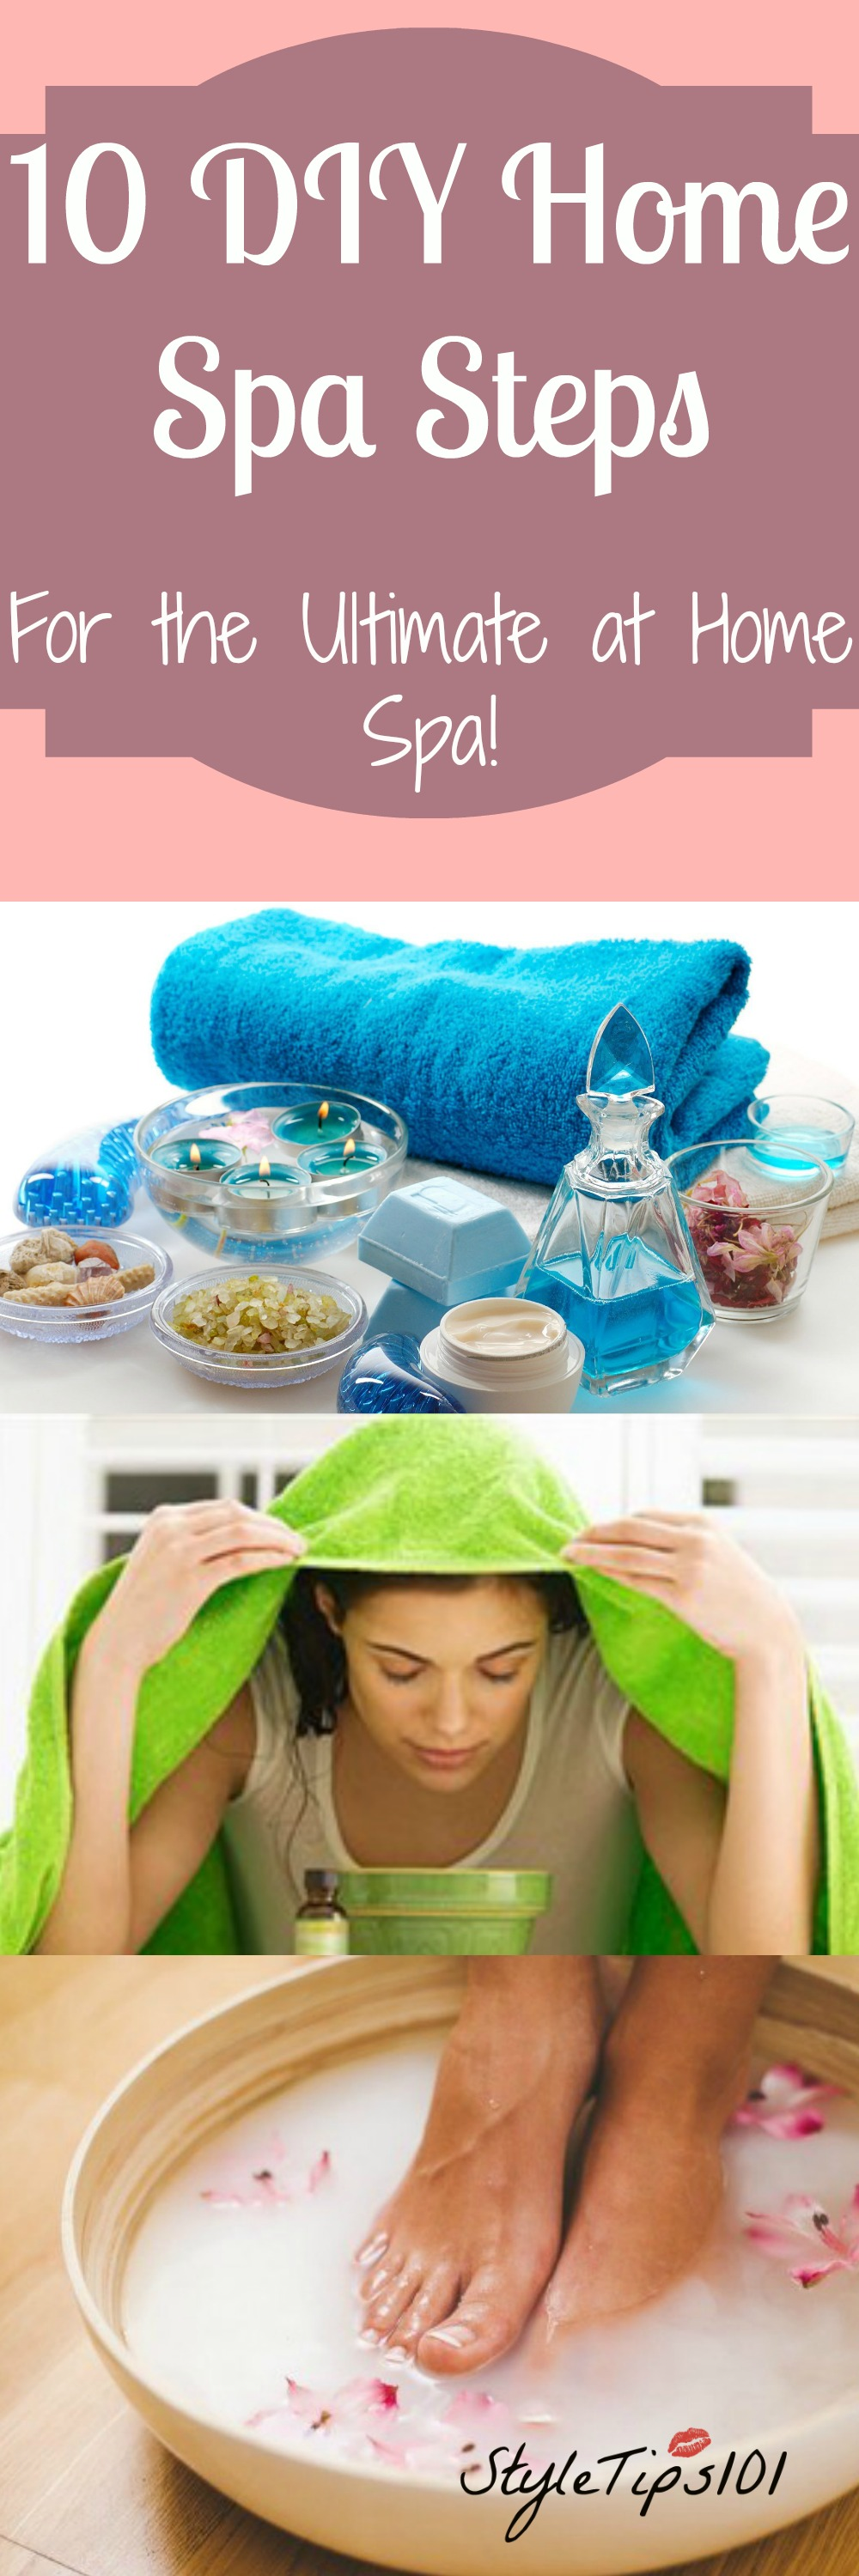 10 diy home spa tips for the ultimate spa day for How to make a spa at home